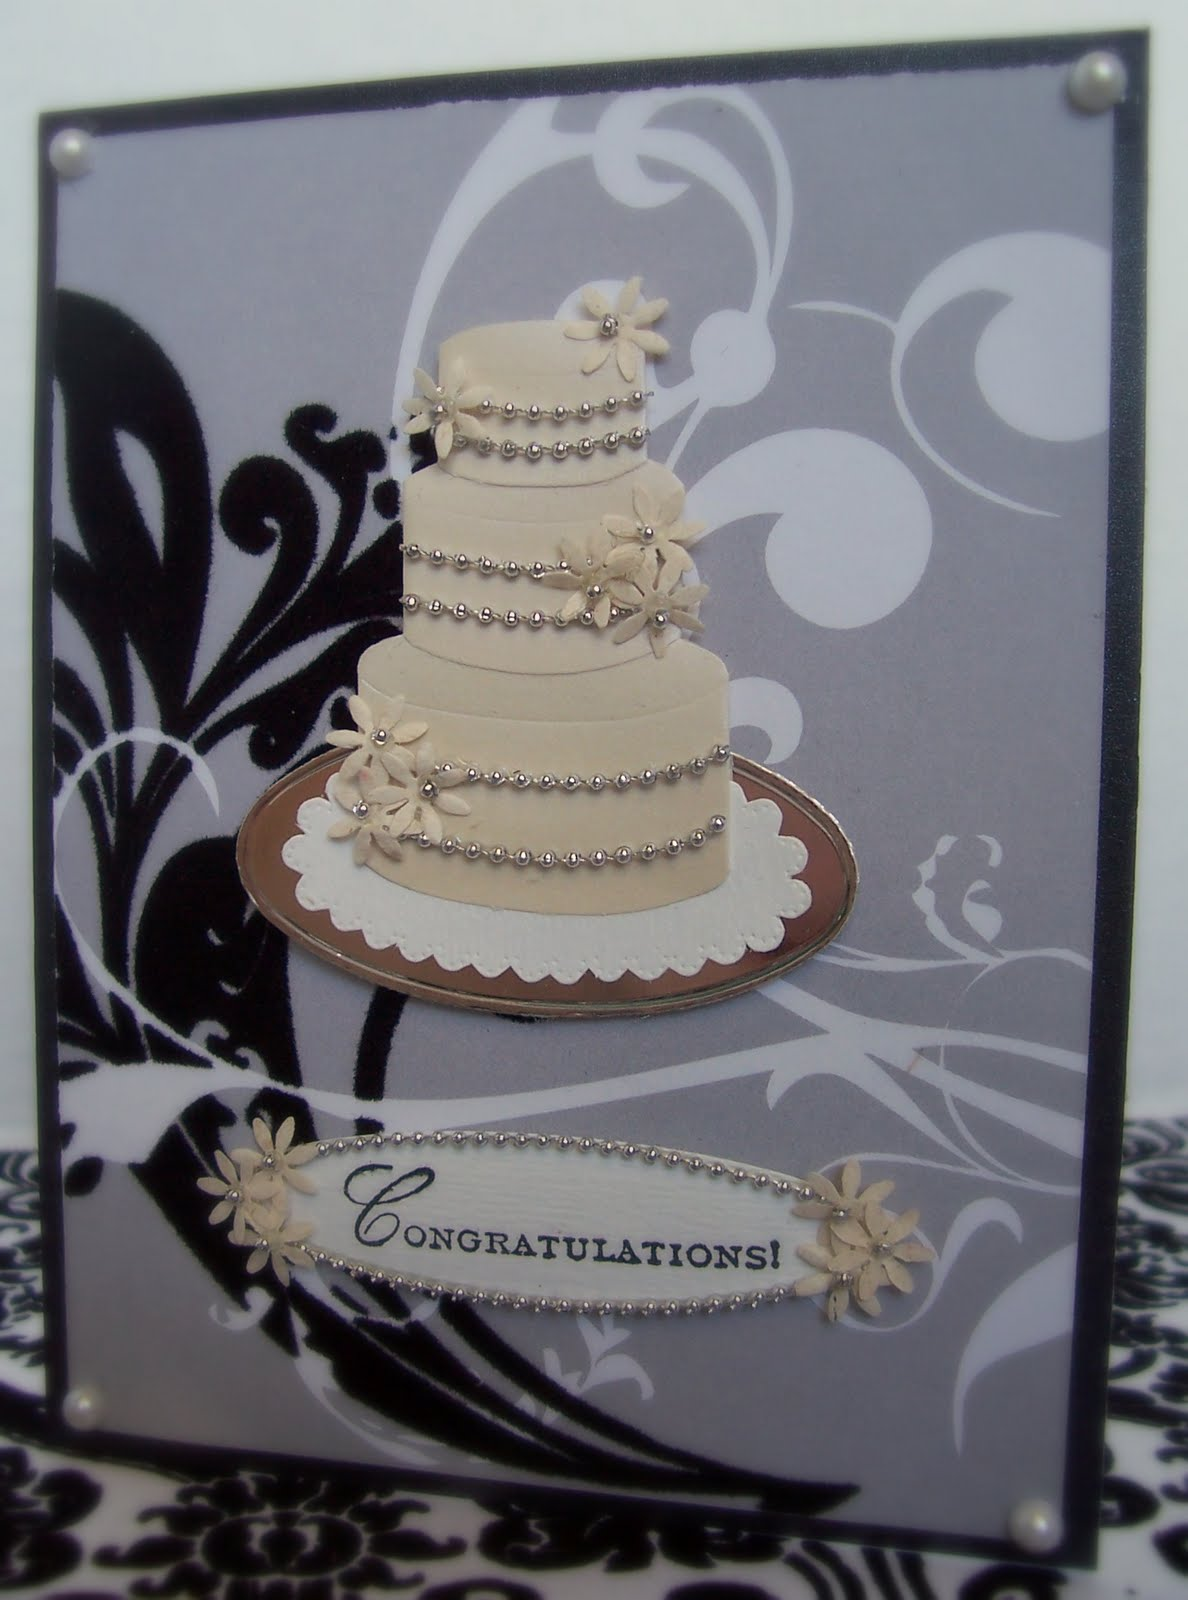 How to scrapbook wedding cards - I Had A Request For A 8 X 8 Pre Made Scrapbook Album To Be Made For A Wedding Gift I Did Not Have A Lot Of Notice But I Almost Think